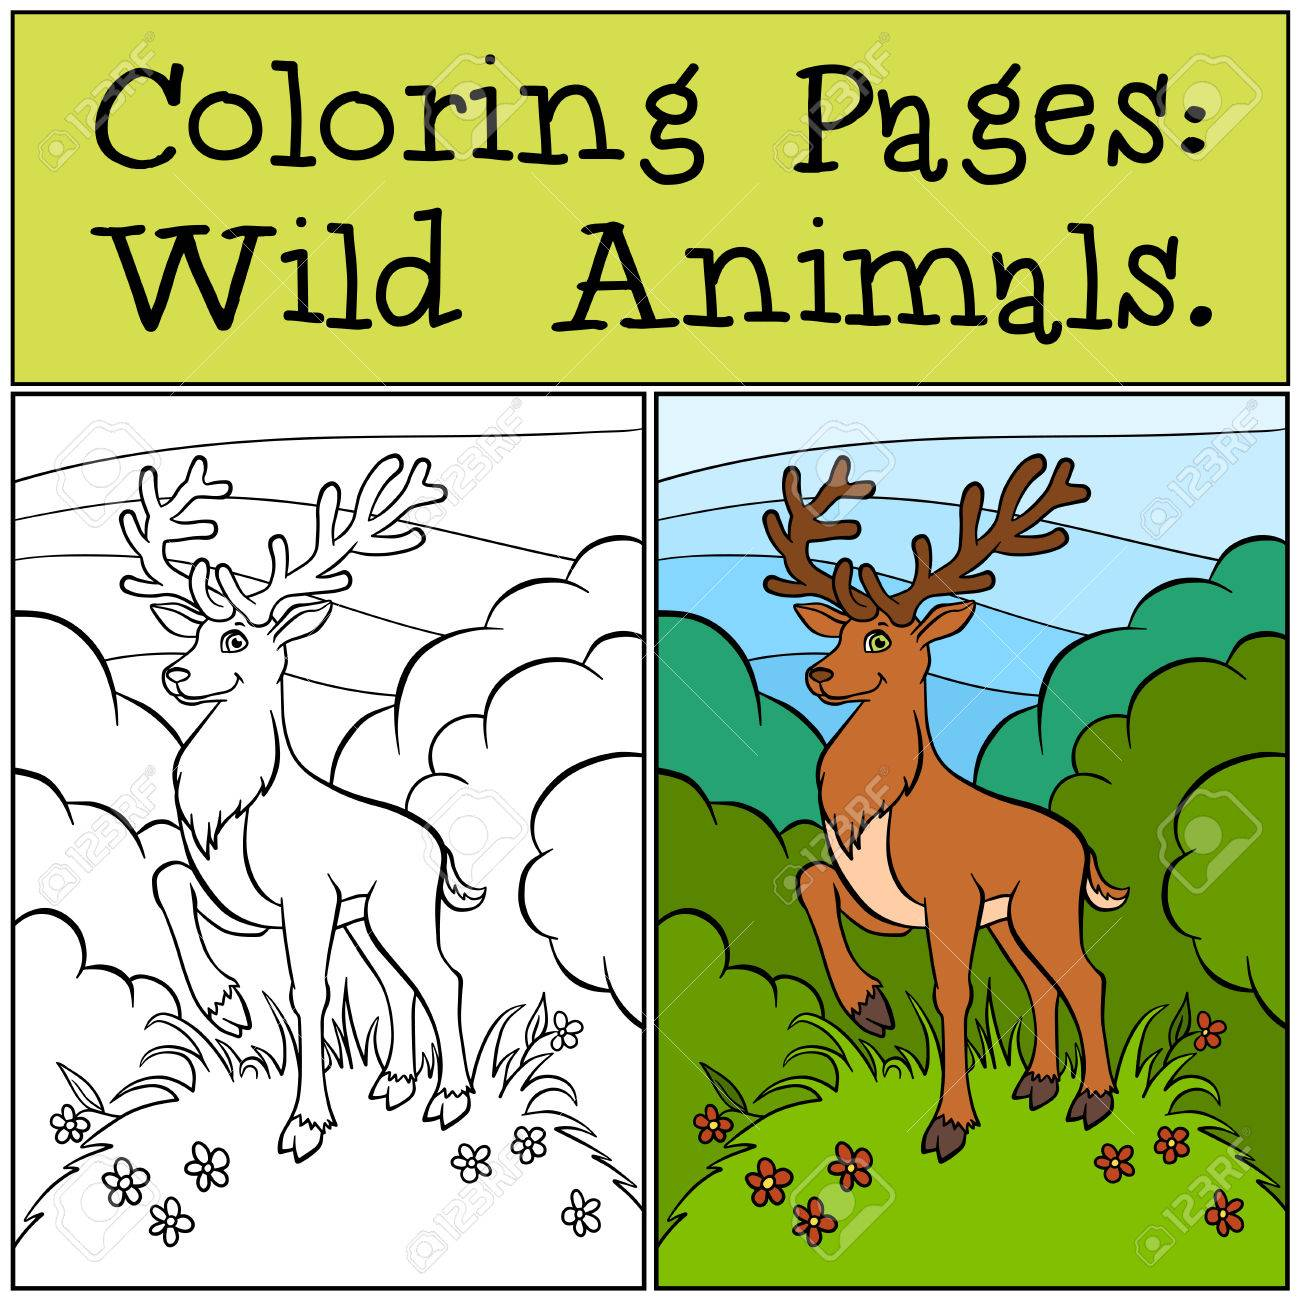 Coloring Pages Wild Animals Cute Deer Stands On The Clearing In Forest